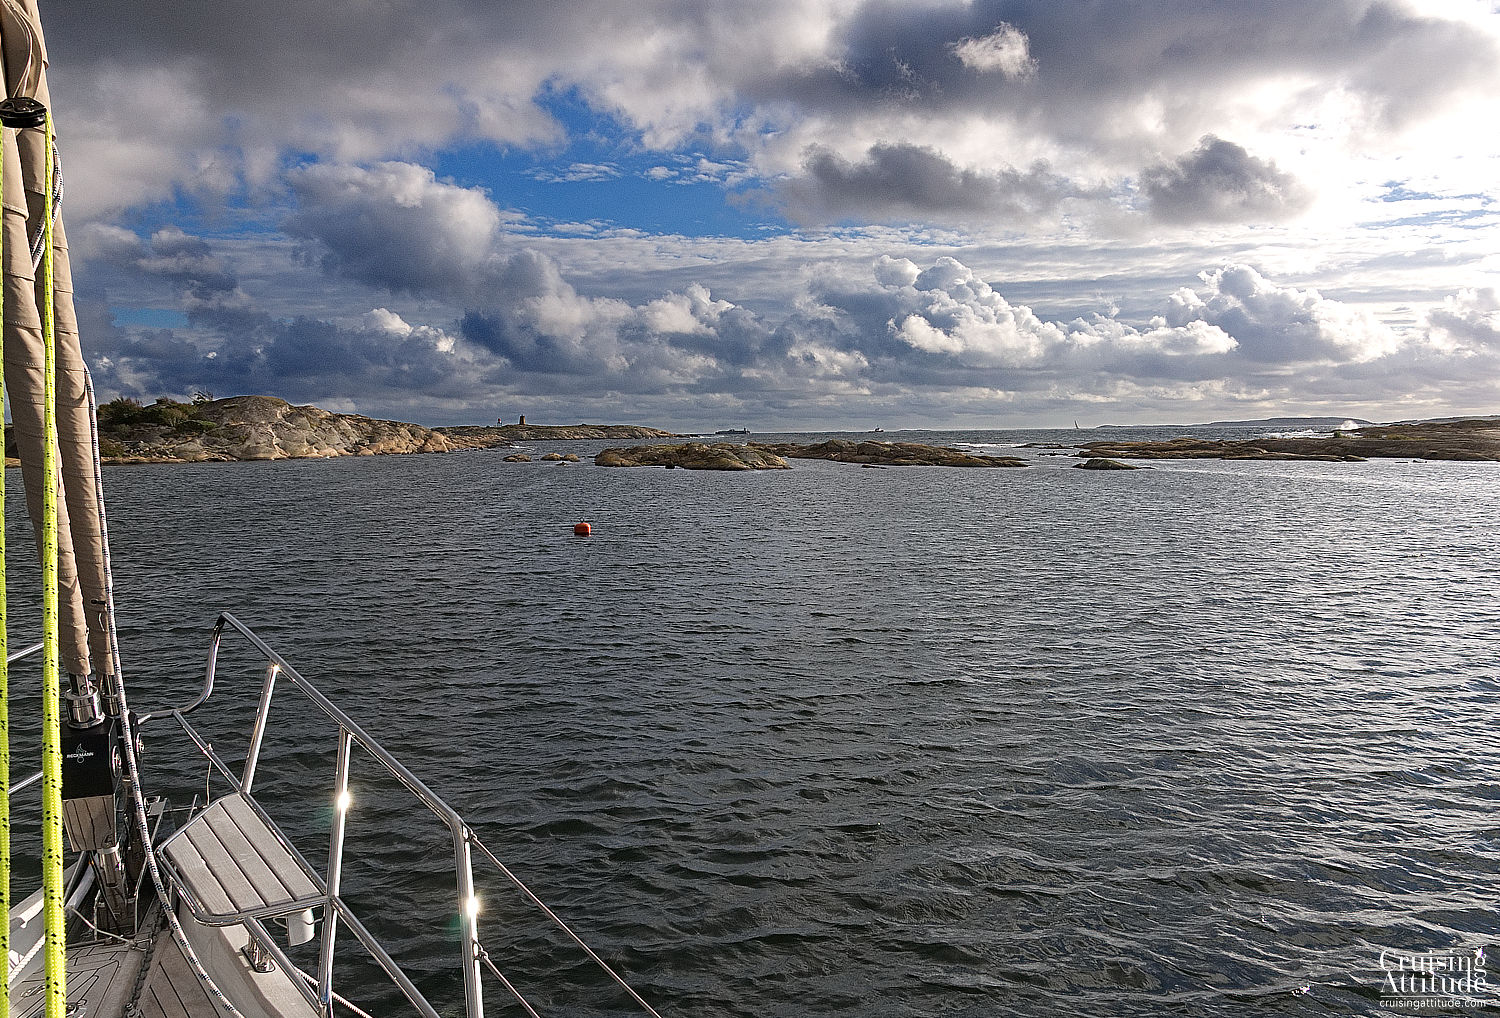 Sailing the Oslofjord - anchorage at Hankøhavna | Cruising Attitude Sailing Blog | Discovery 55